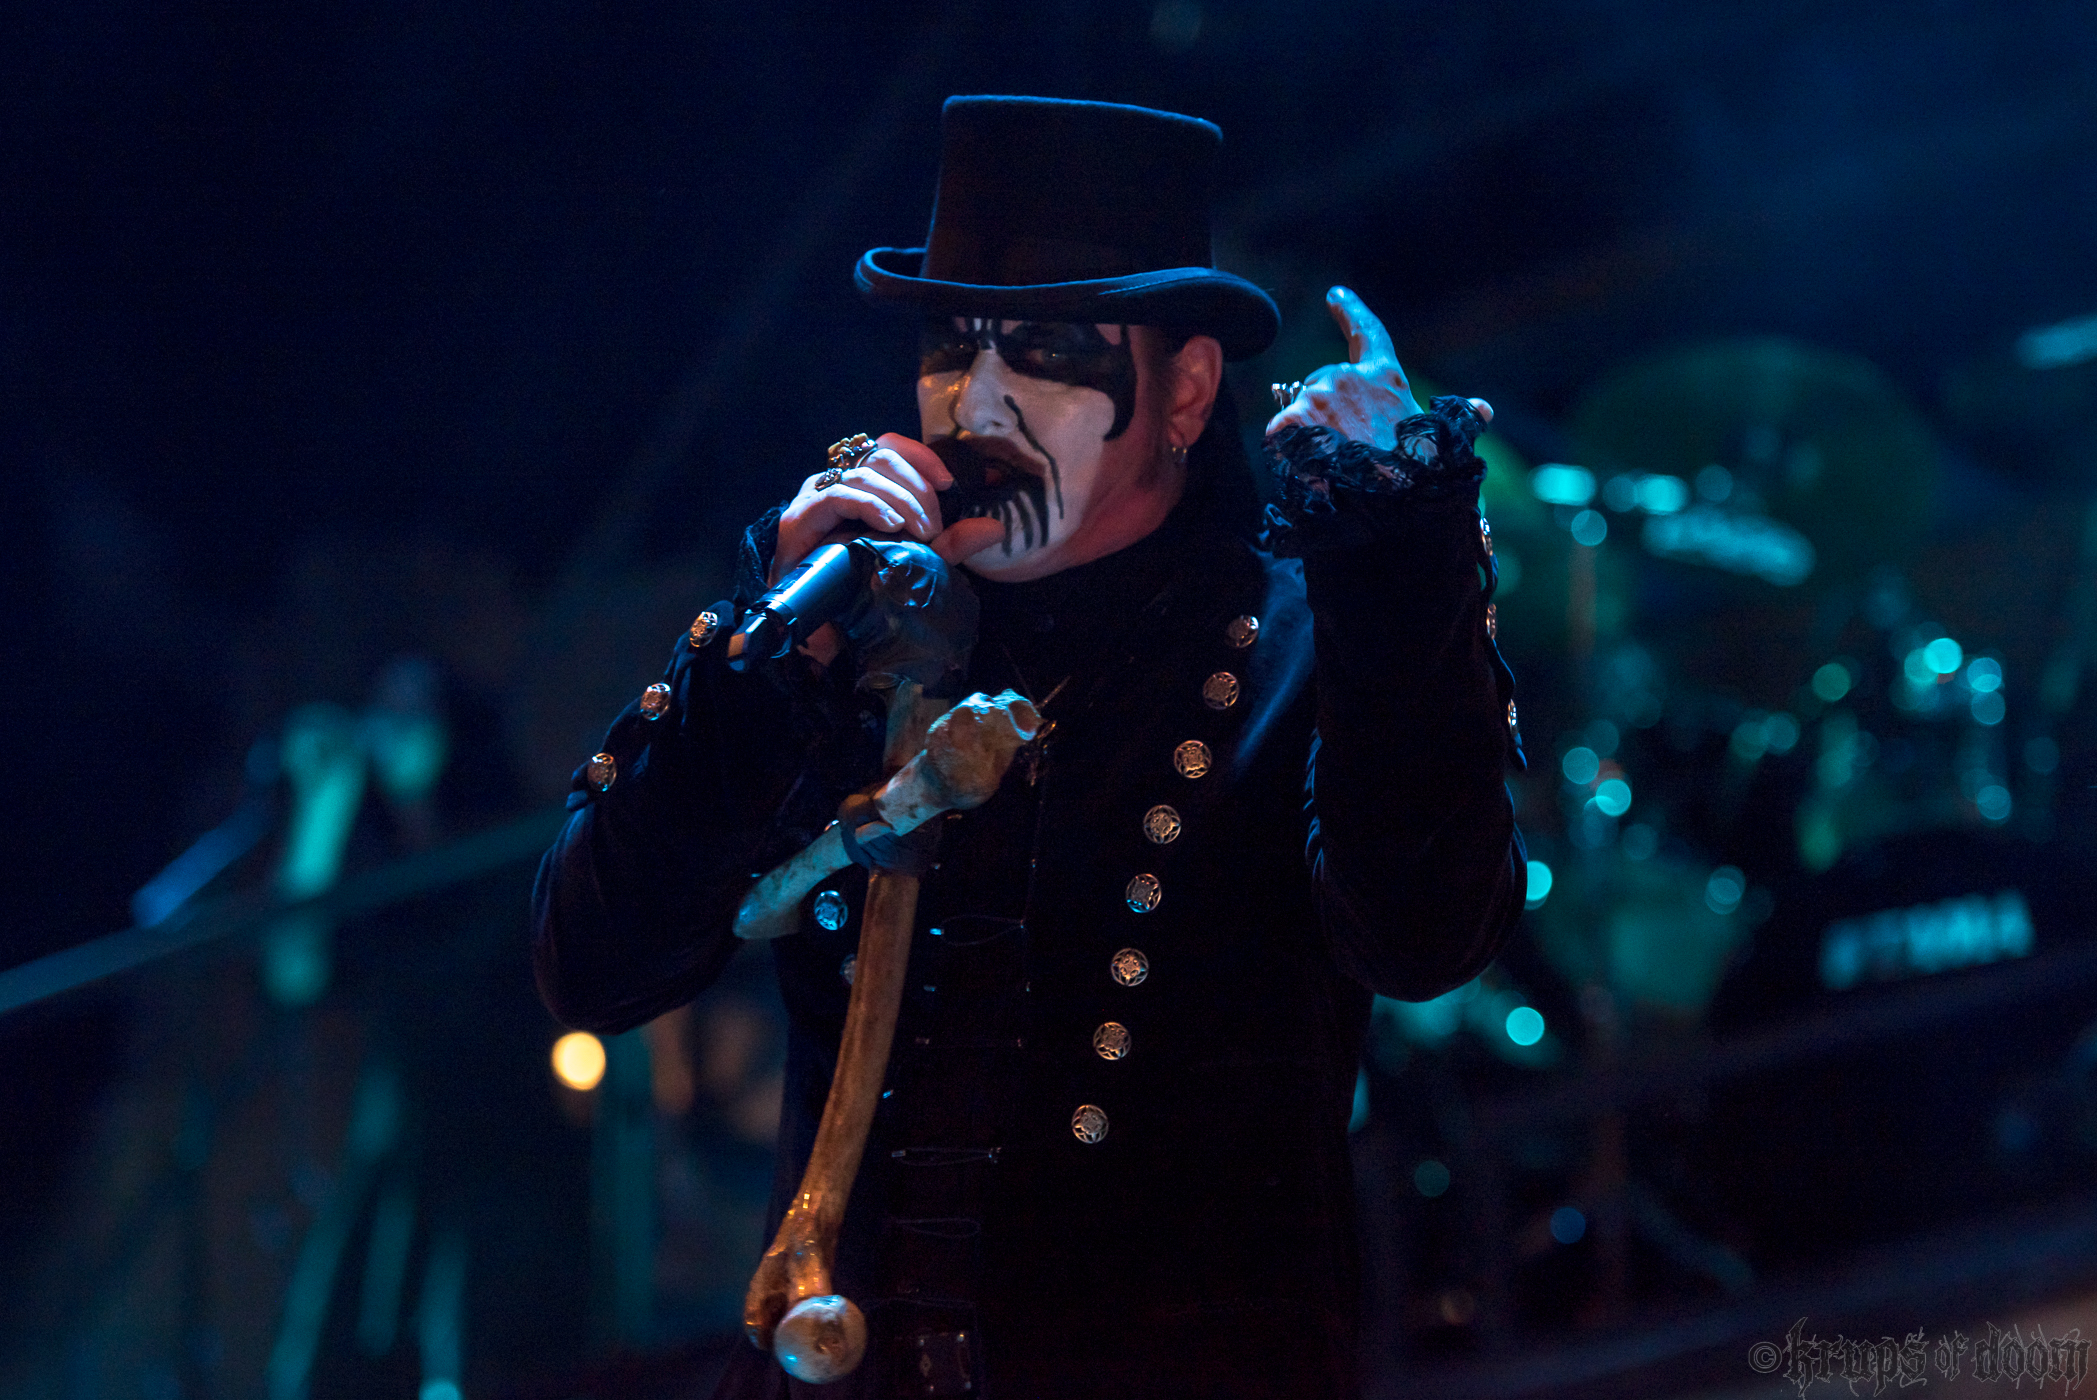 Hellfest_2019, King_Diamond-5574